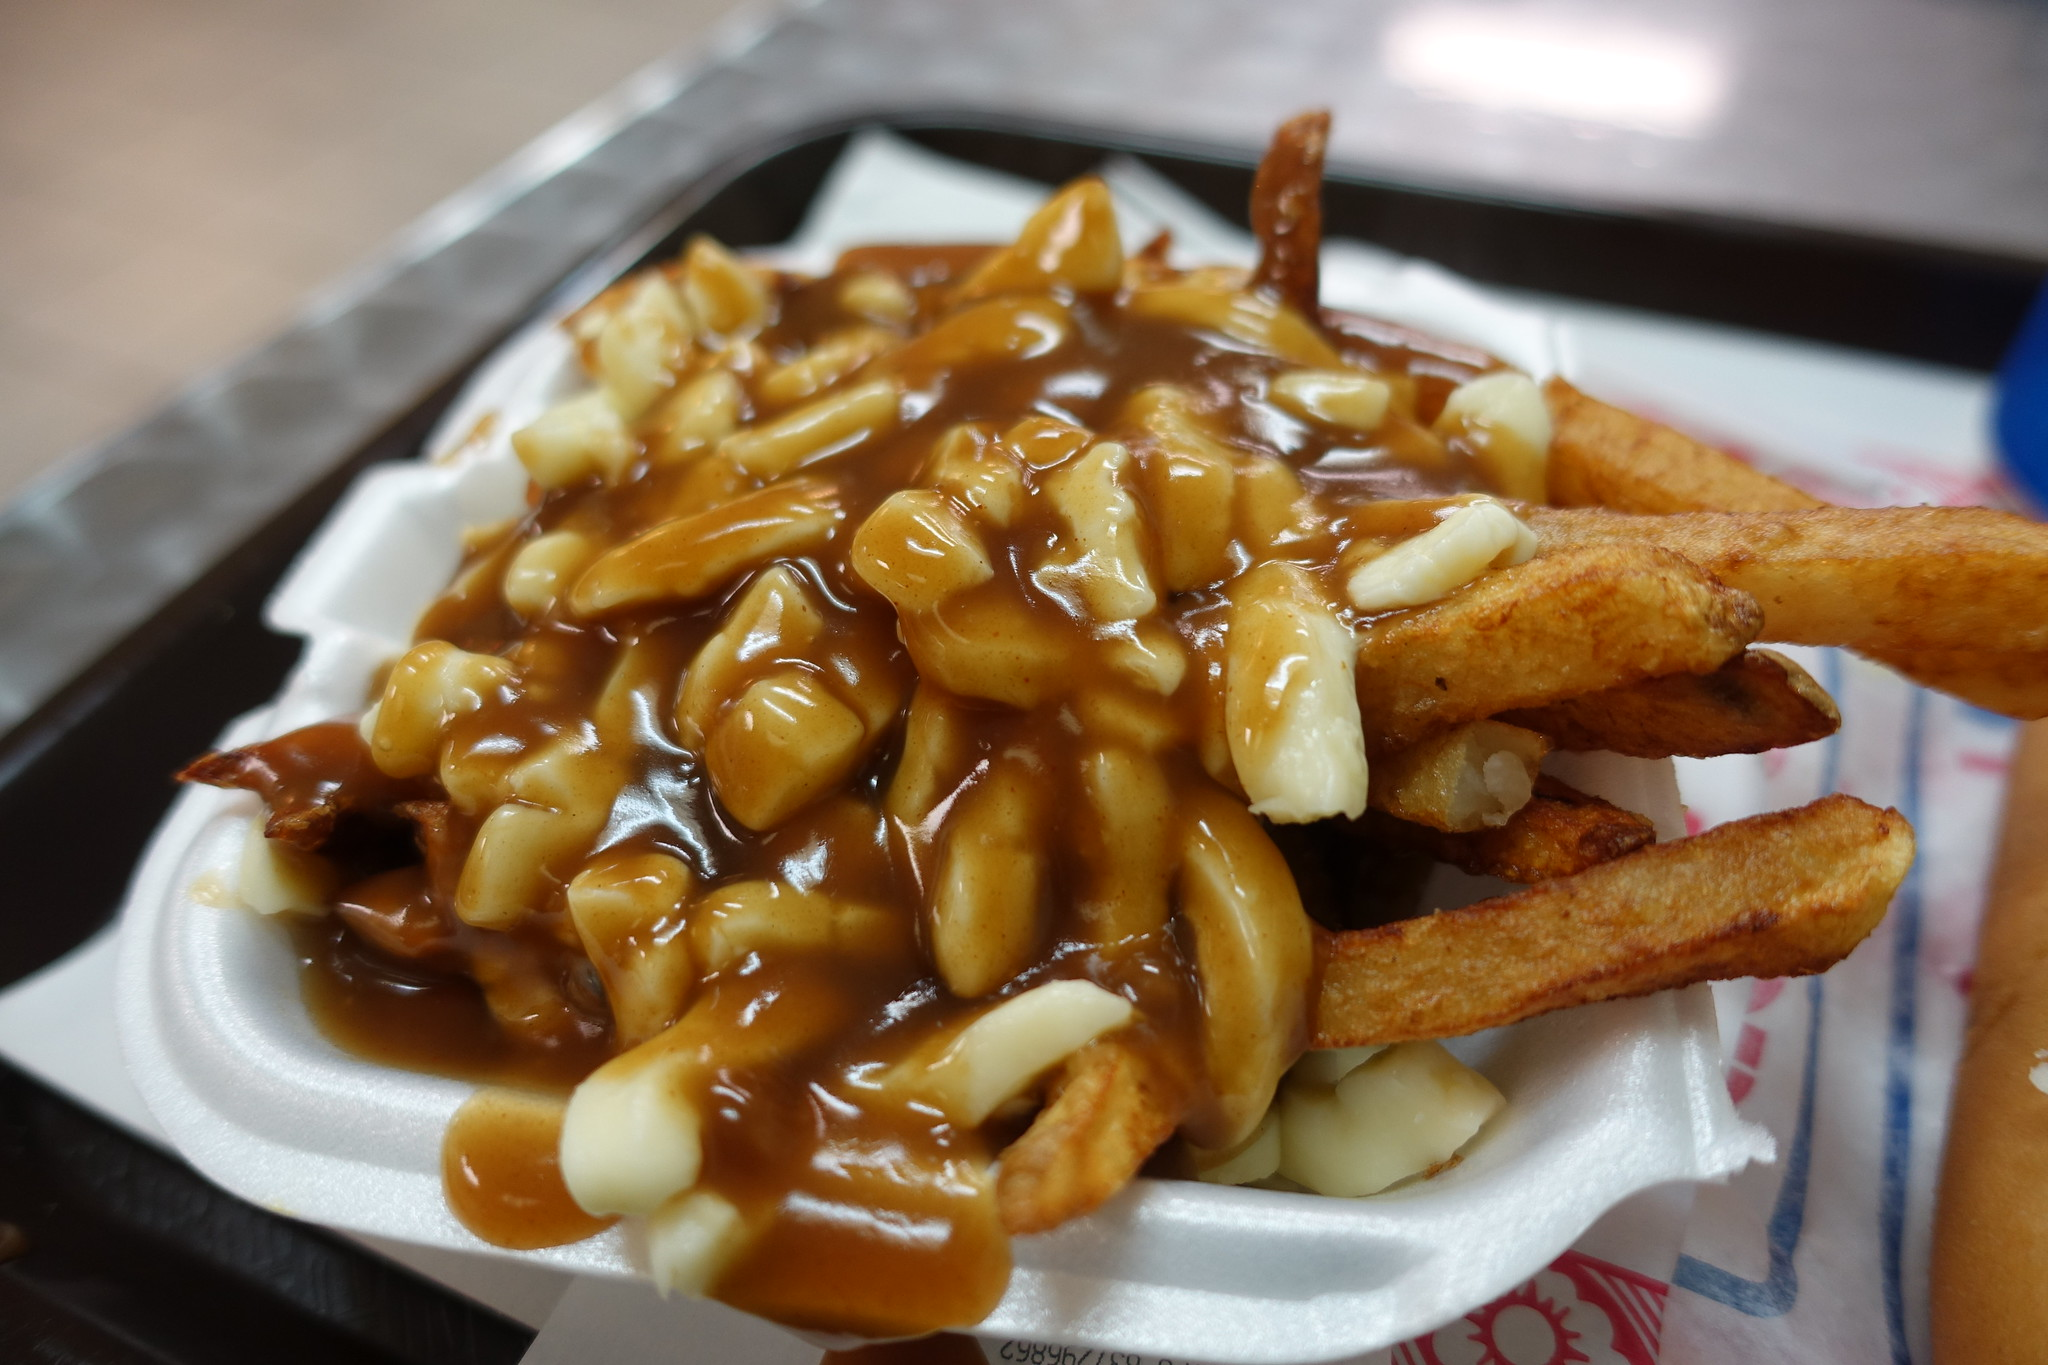 Poutine, photo credit Guilhem Vellut via Flickr, used unmodified under CC BY 2.0 Attribution license